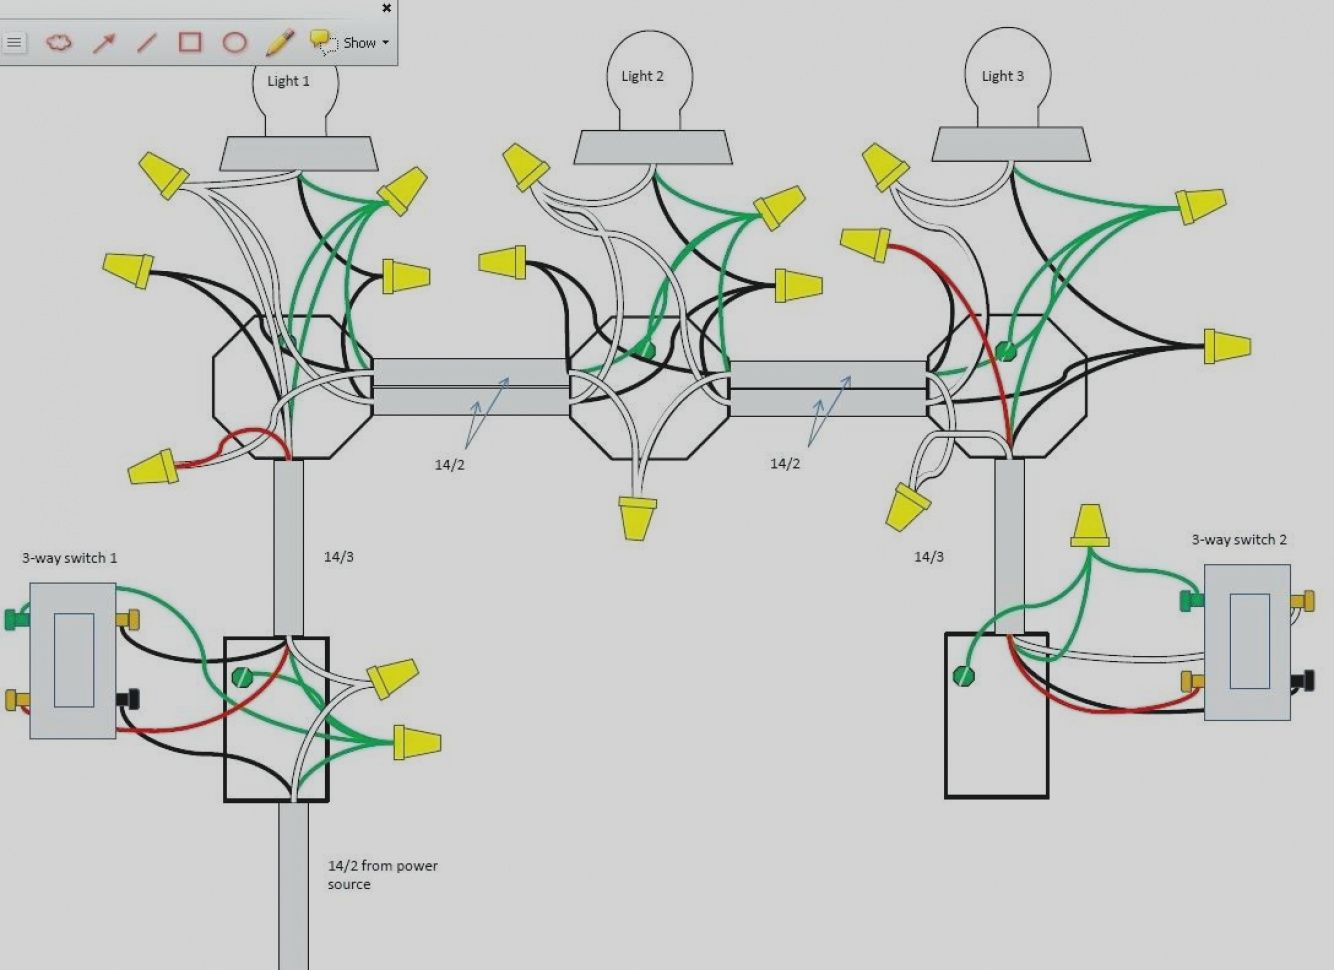 unique 4 way switch wiring diagram multiple lights wellread me with 3 and [ 1334 x 970 Pixel ]